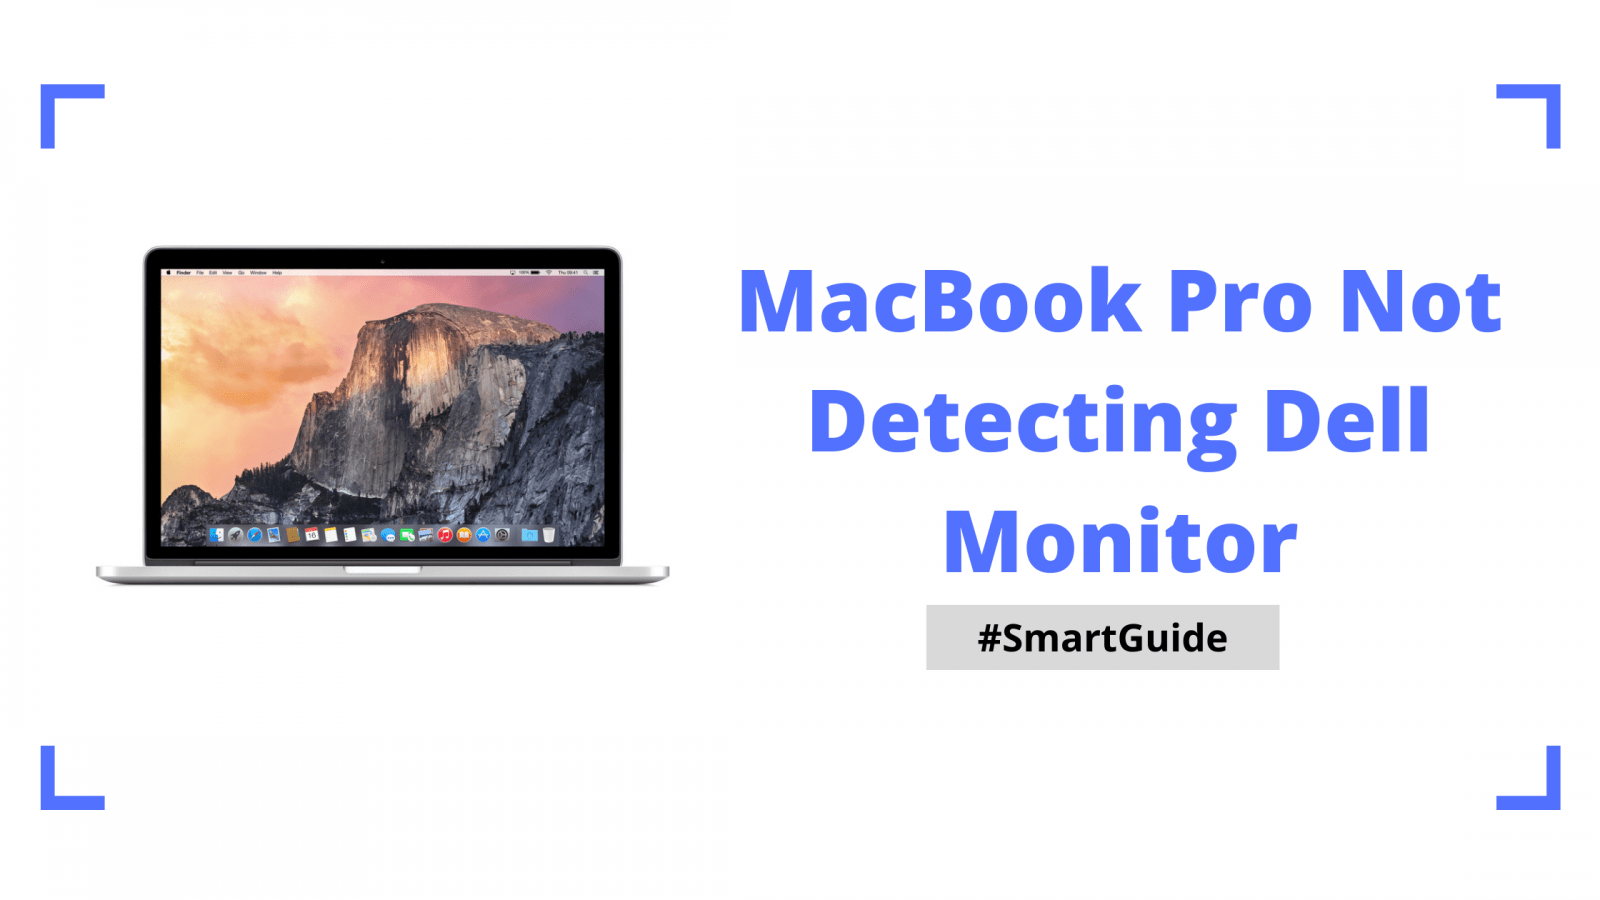 MacBook Pro Not Detecting Dell Monitor